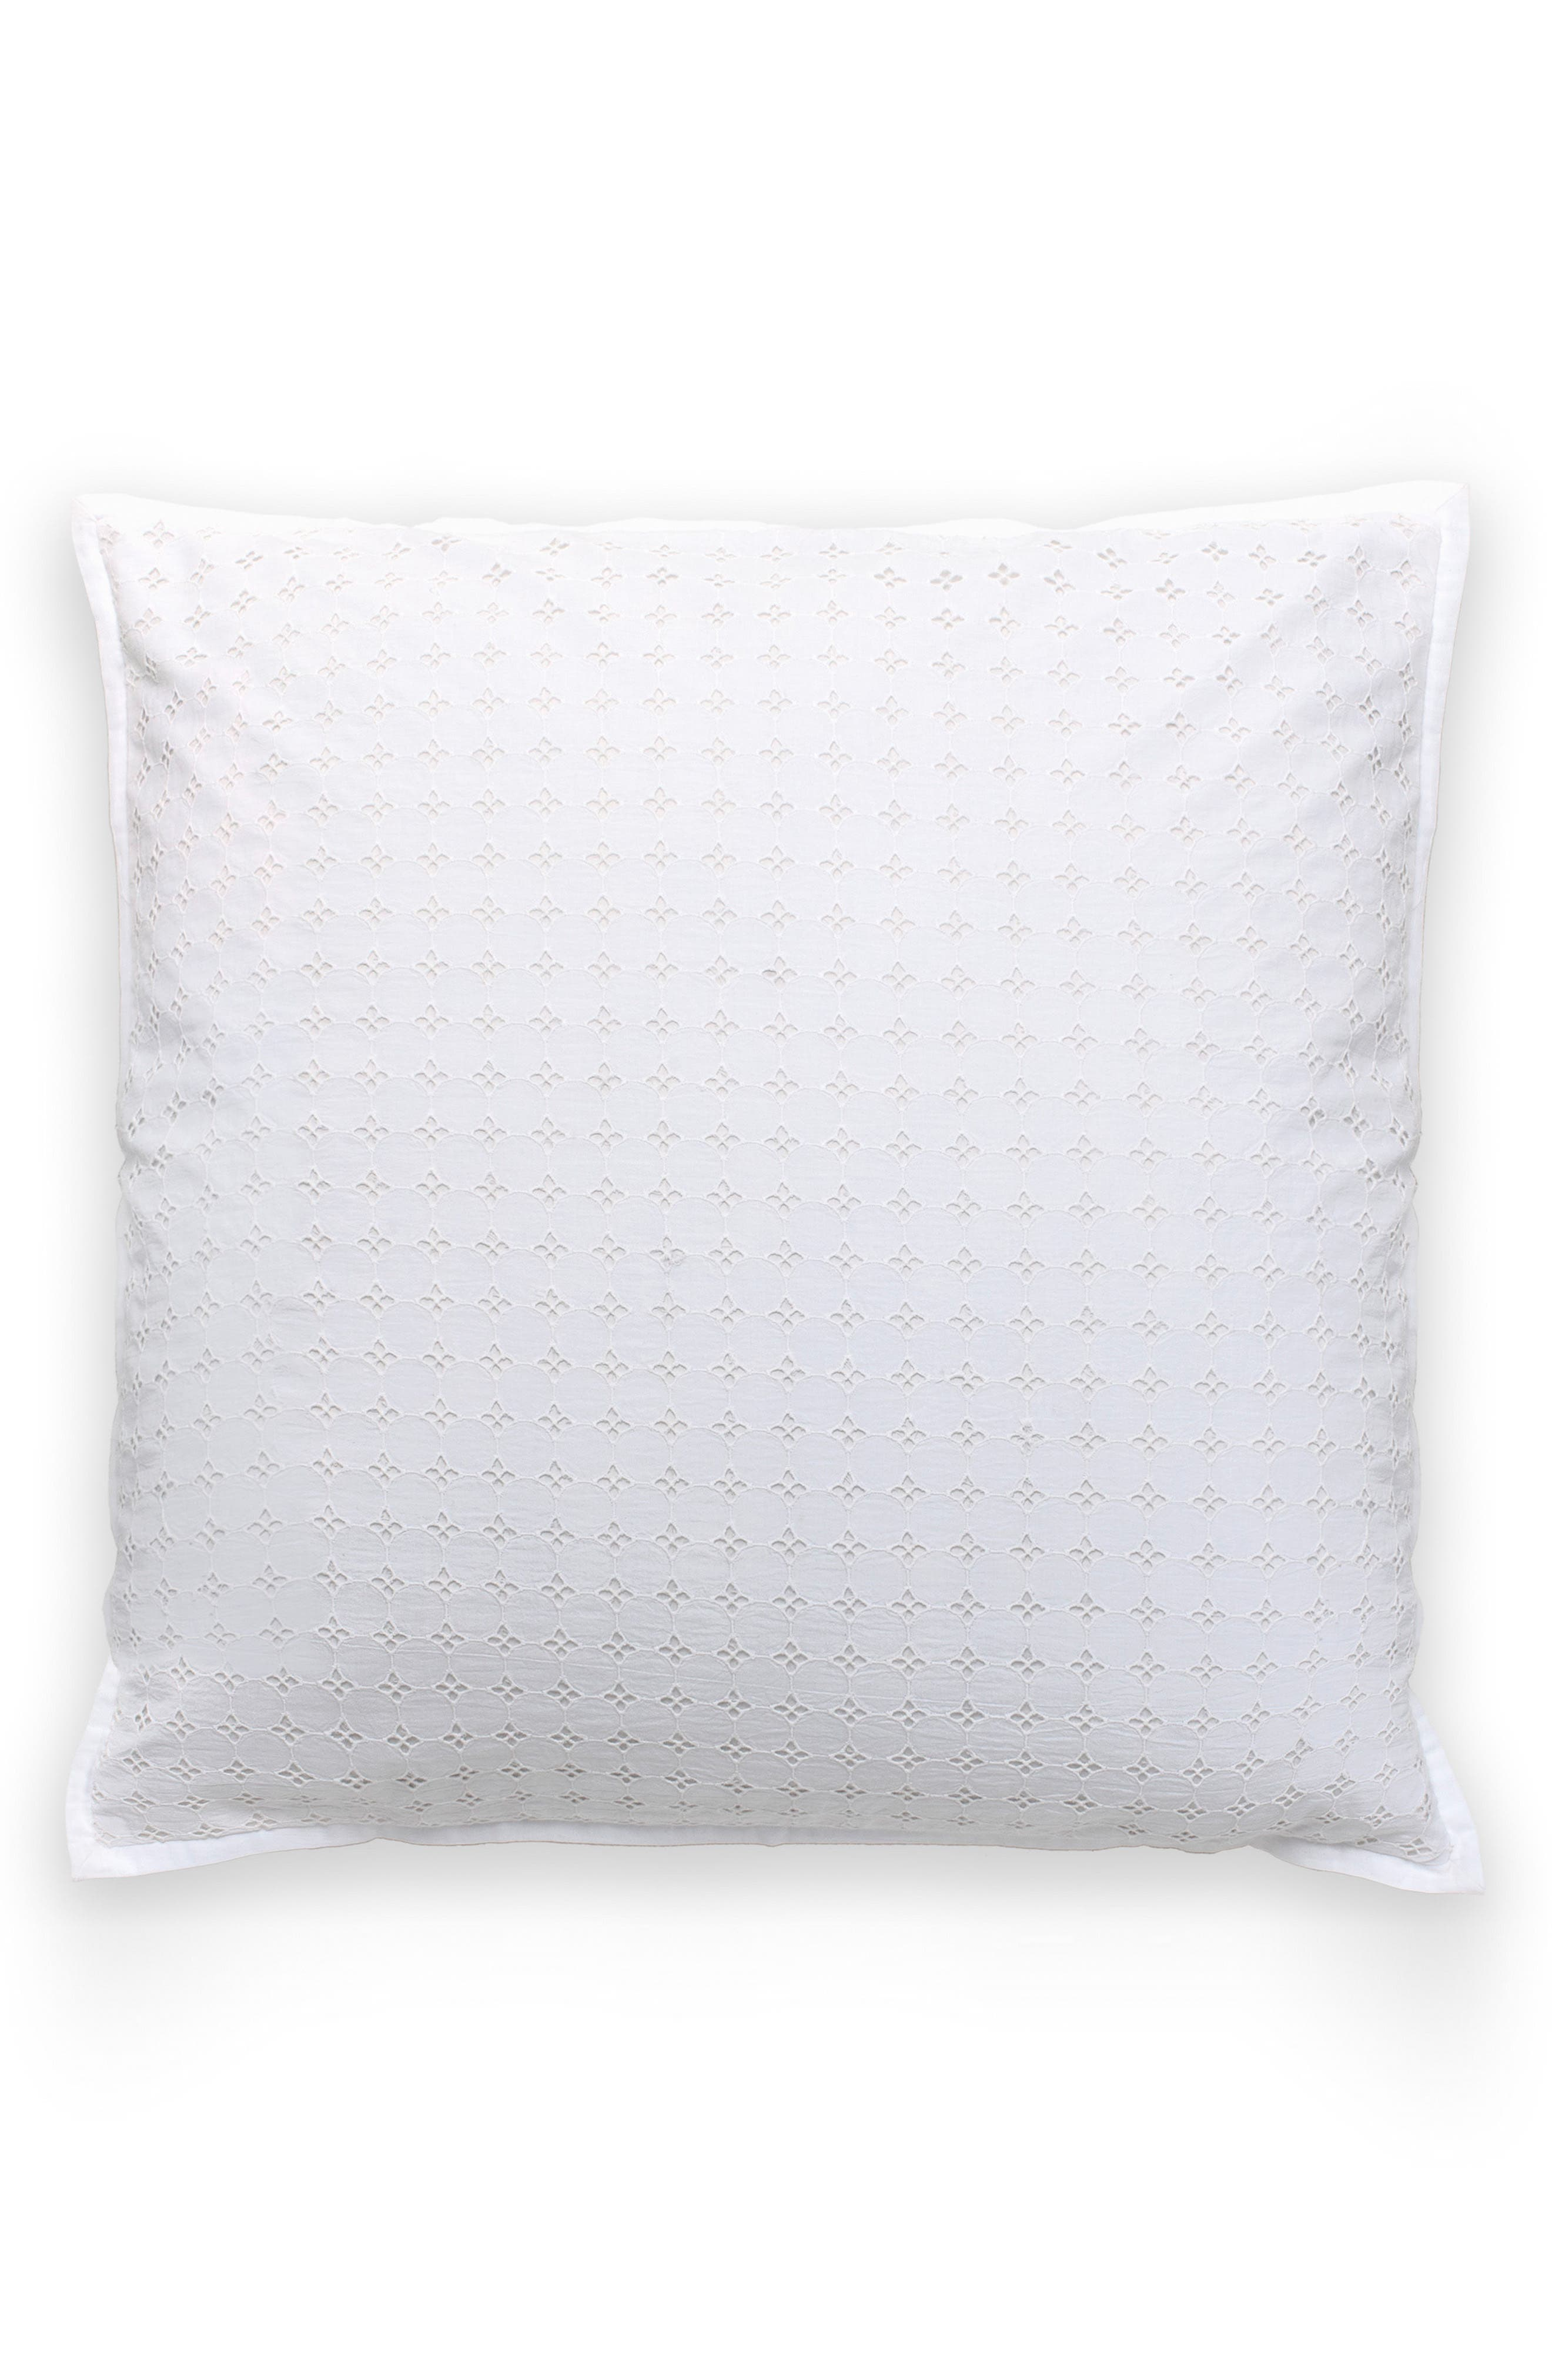 Main Image - kate spade new york dot eyelet euro sham